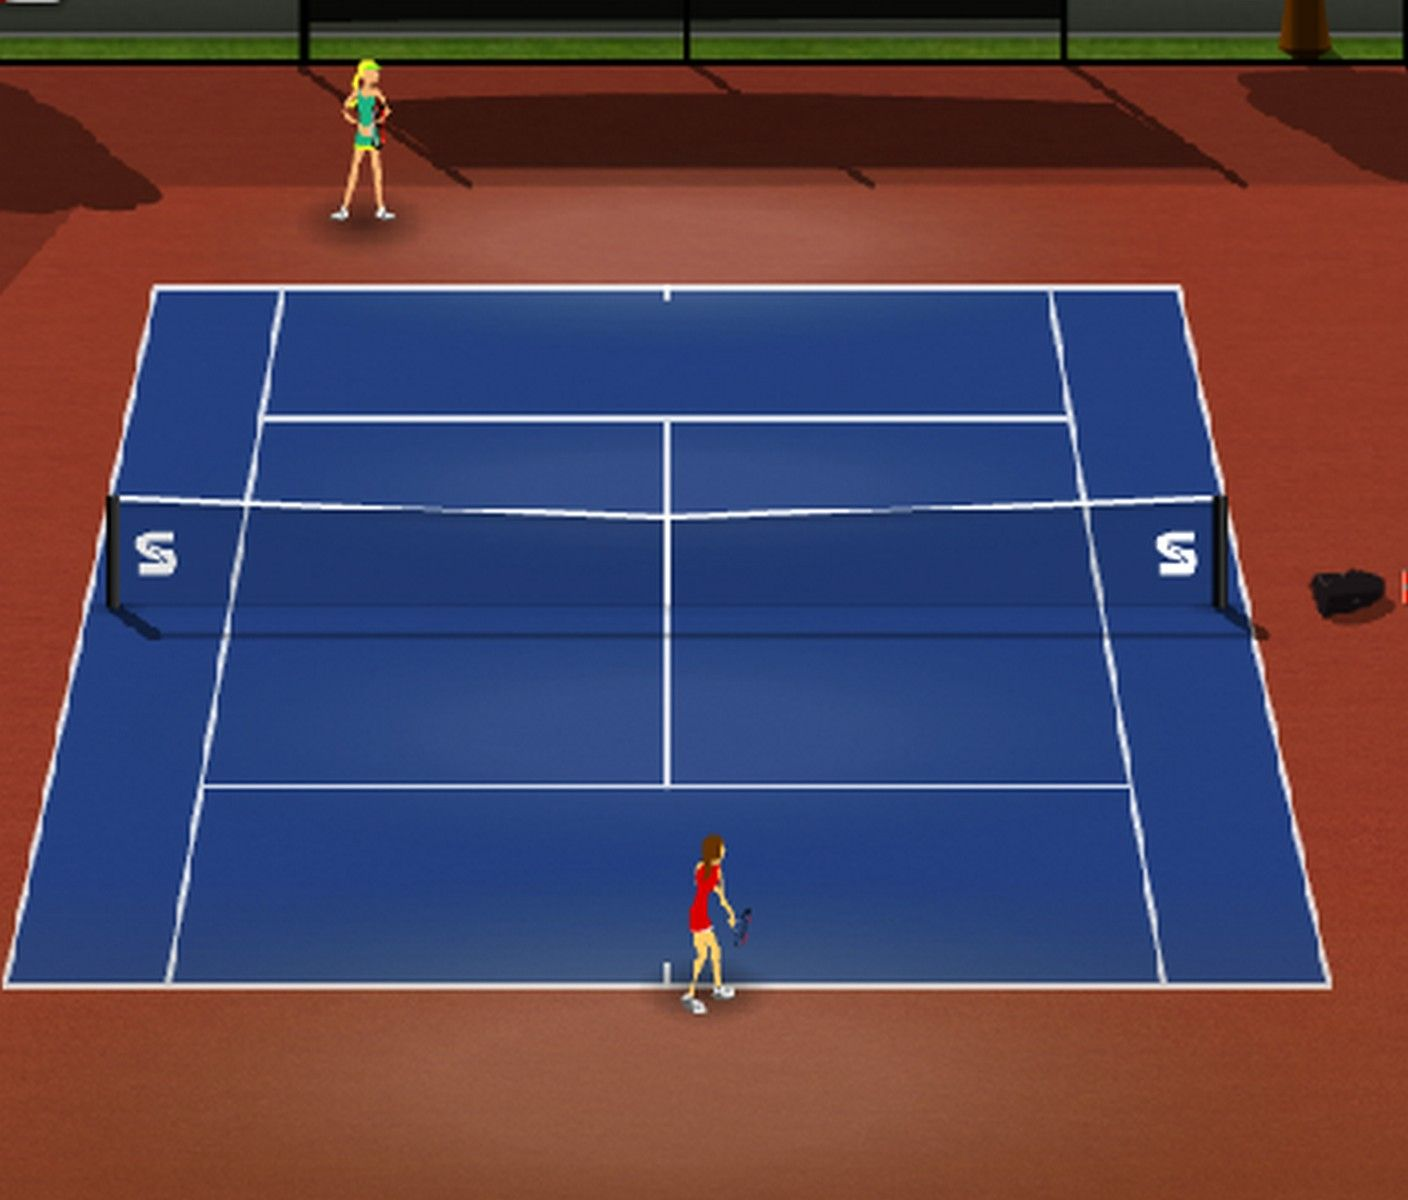 Stick Tennis Games, Fighting games, Games to play